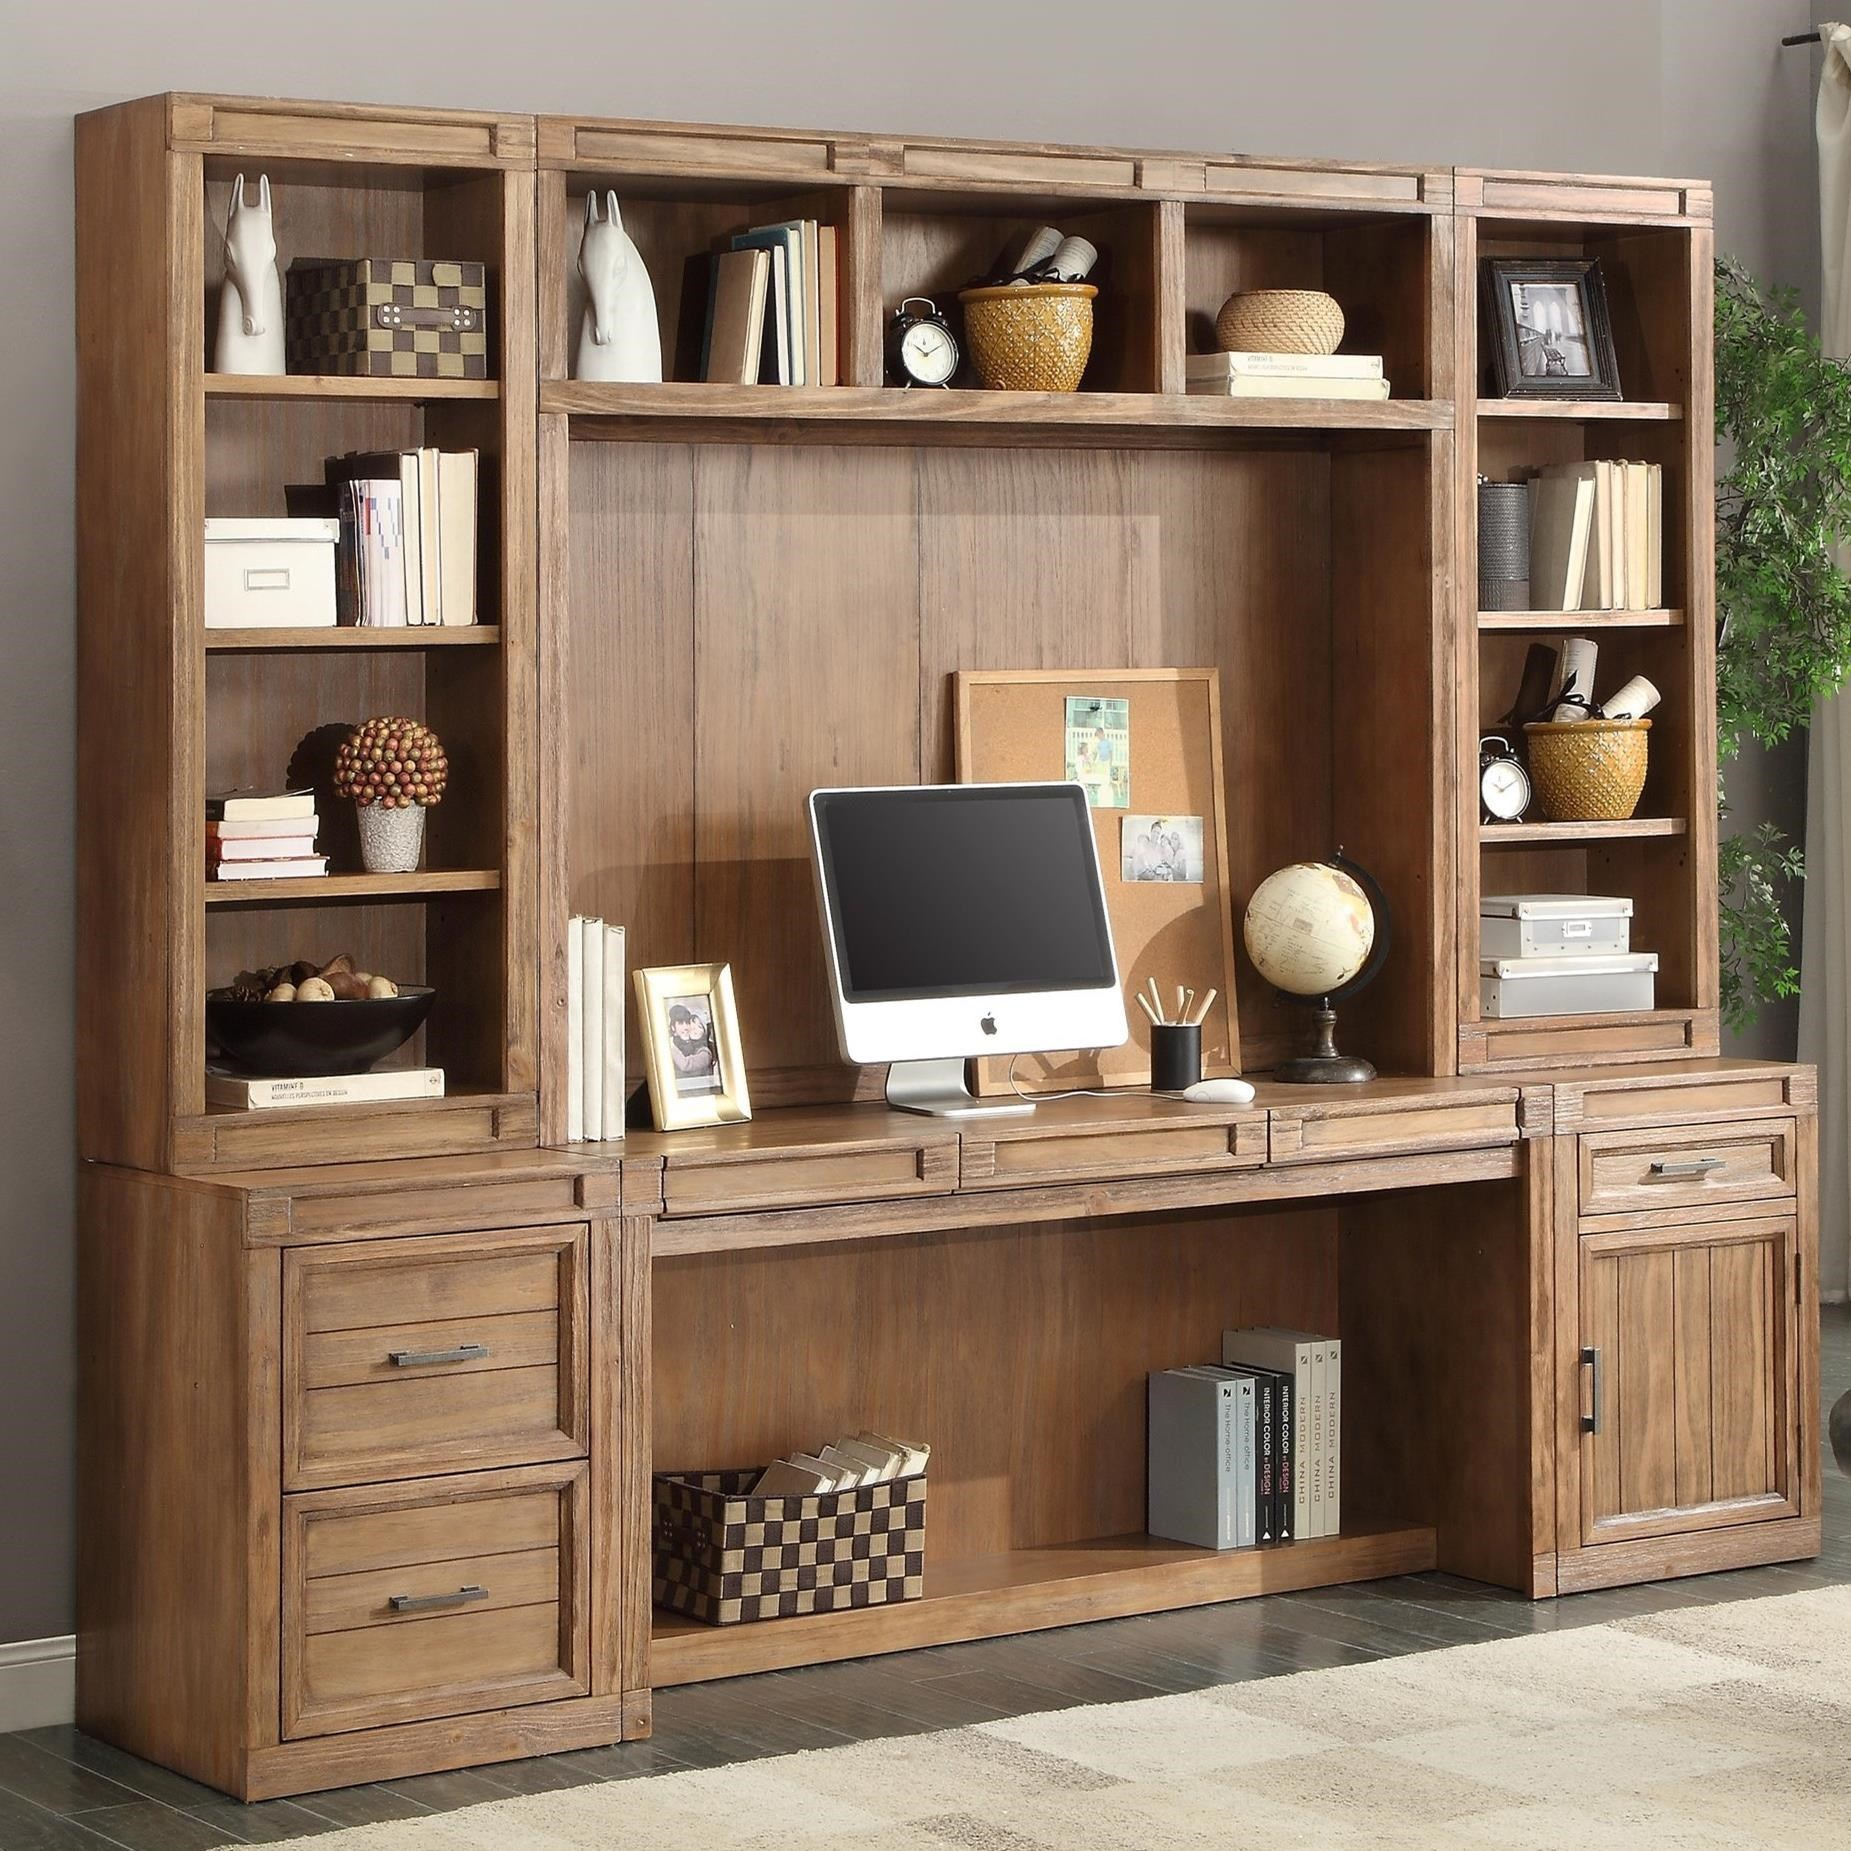 Hickory Creek 6 Piece Desk With Hutch And Printer Storage By Parker House